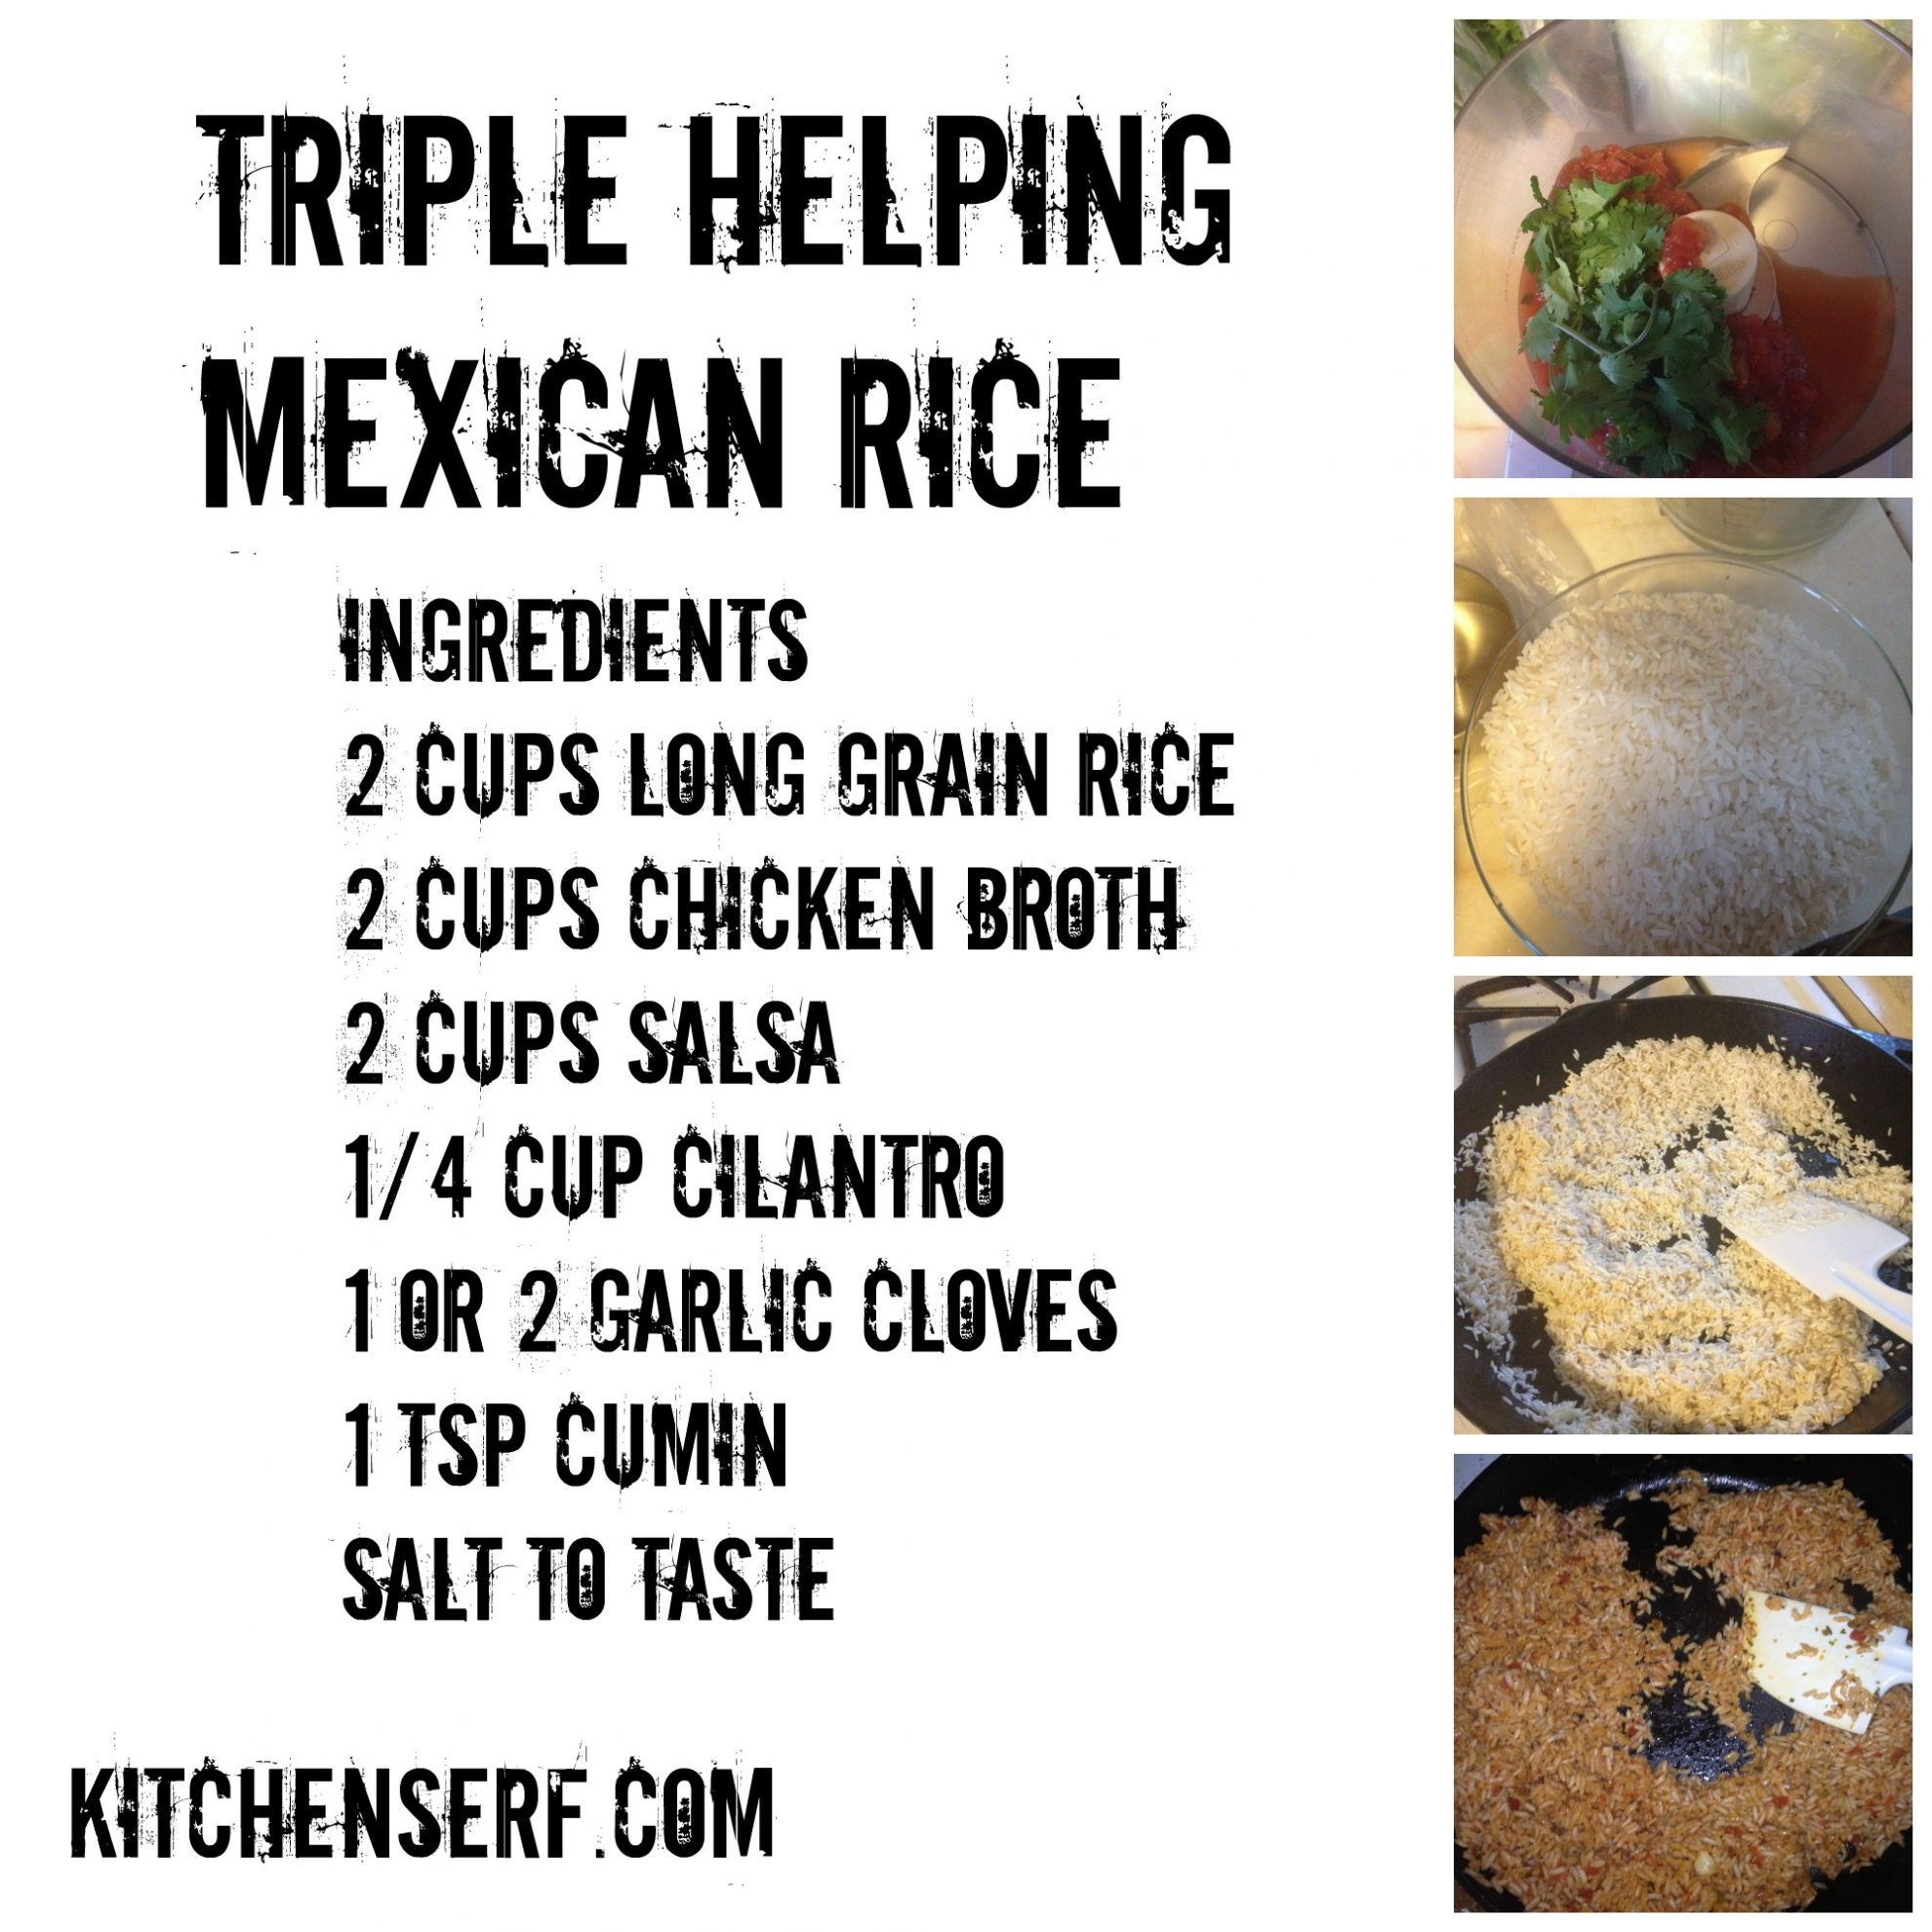 Triple Helping Mexican Rice